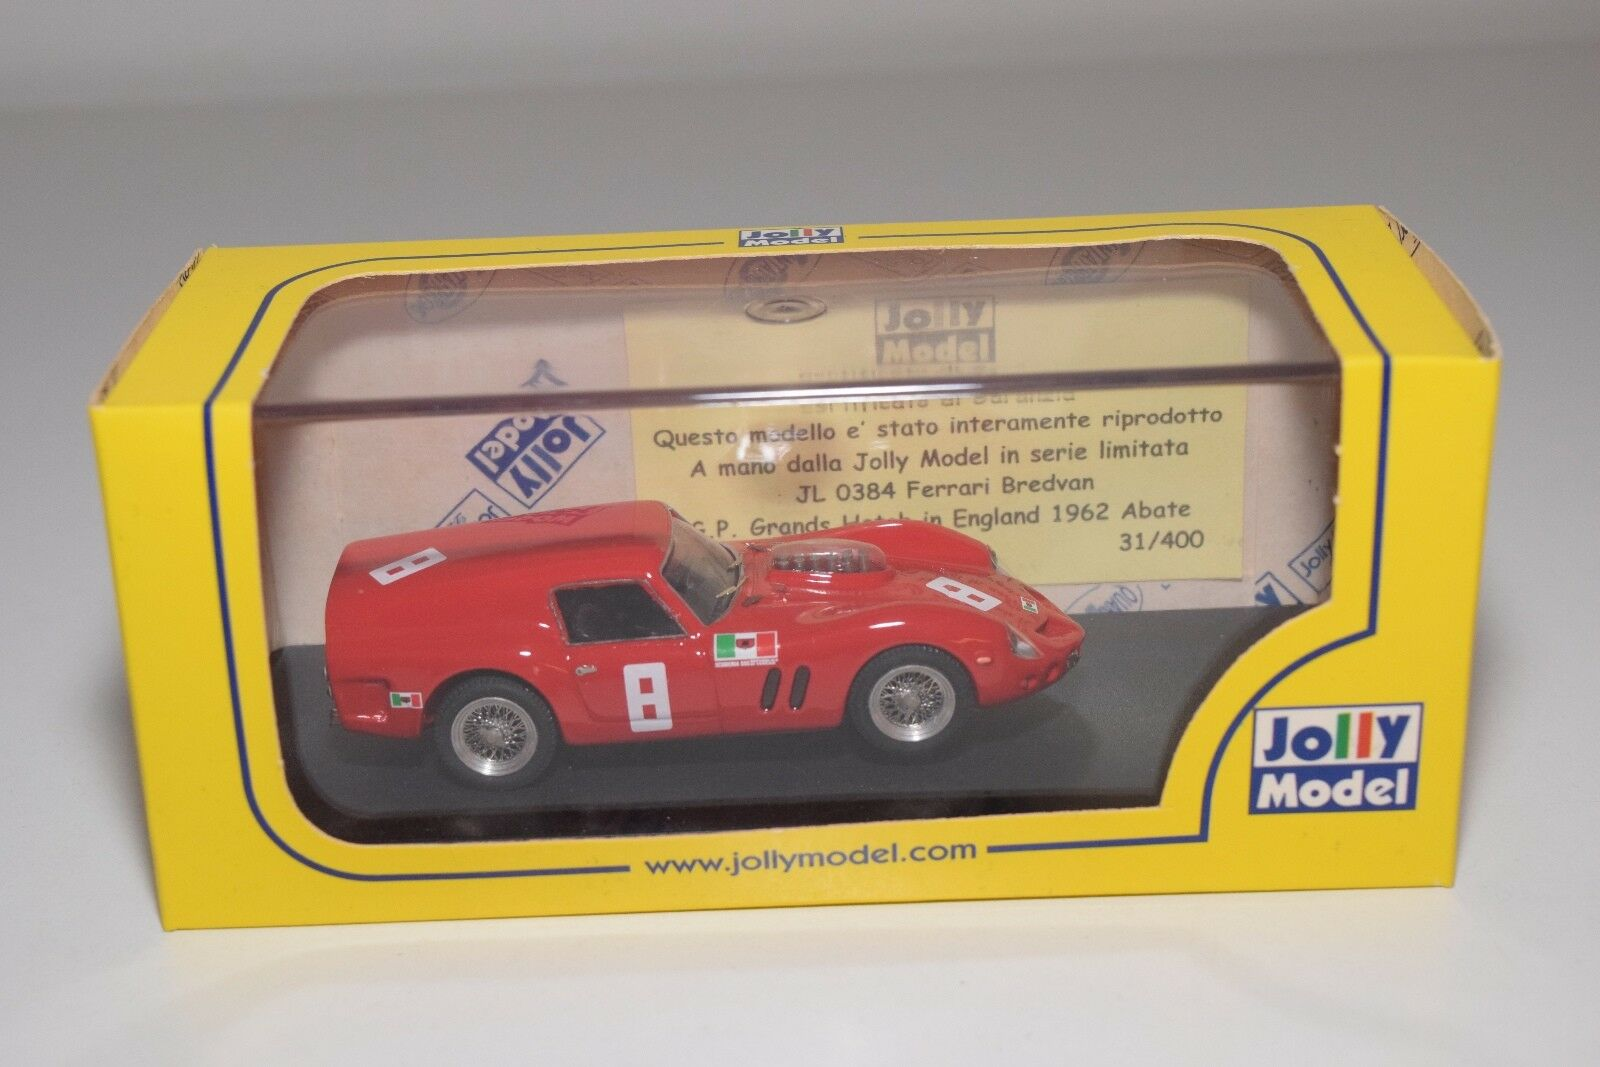 V 1:43 JOLLY MODEL JL0384 FERRARI BREDVAN BREADVAN G.P. GRANDS HATCH 62 MIB RARE